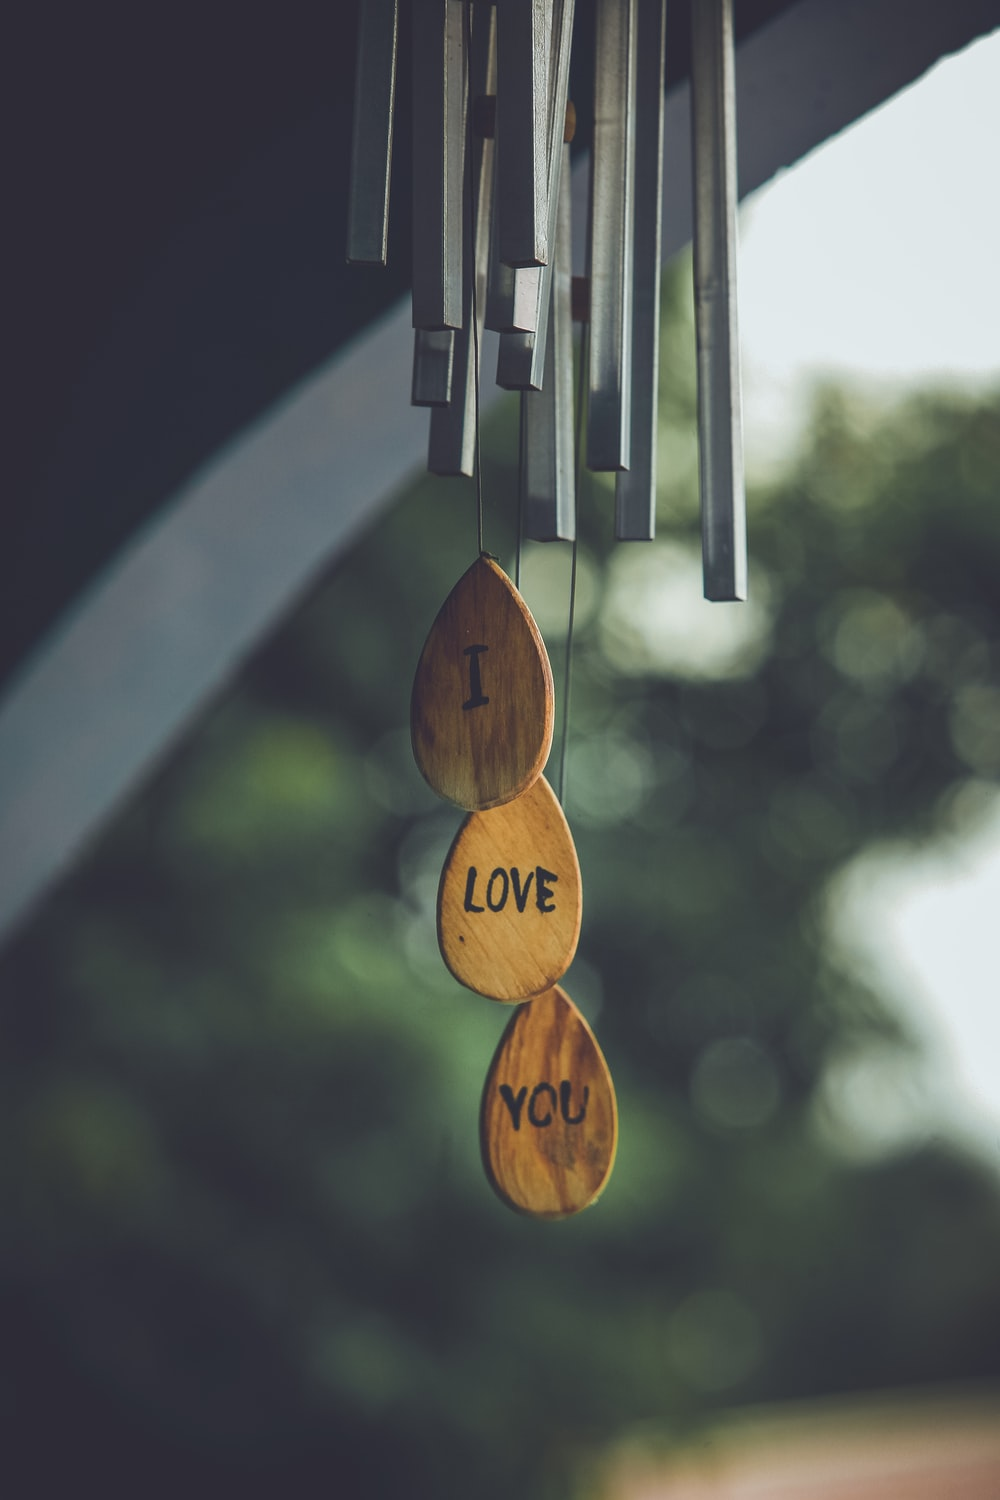 focus photography of gray and brown wind chimes